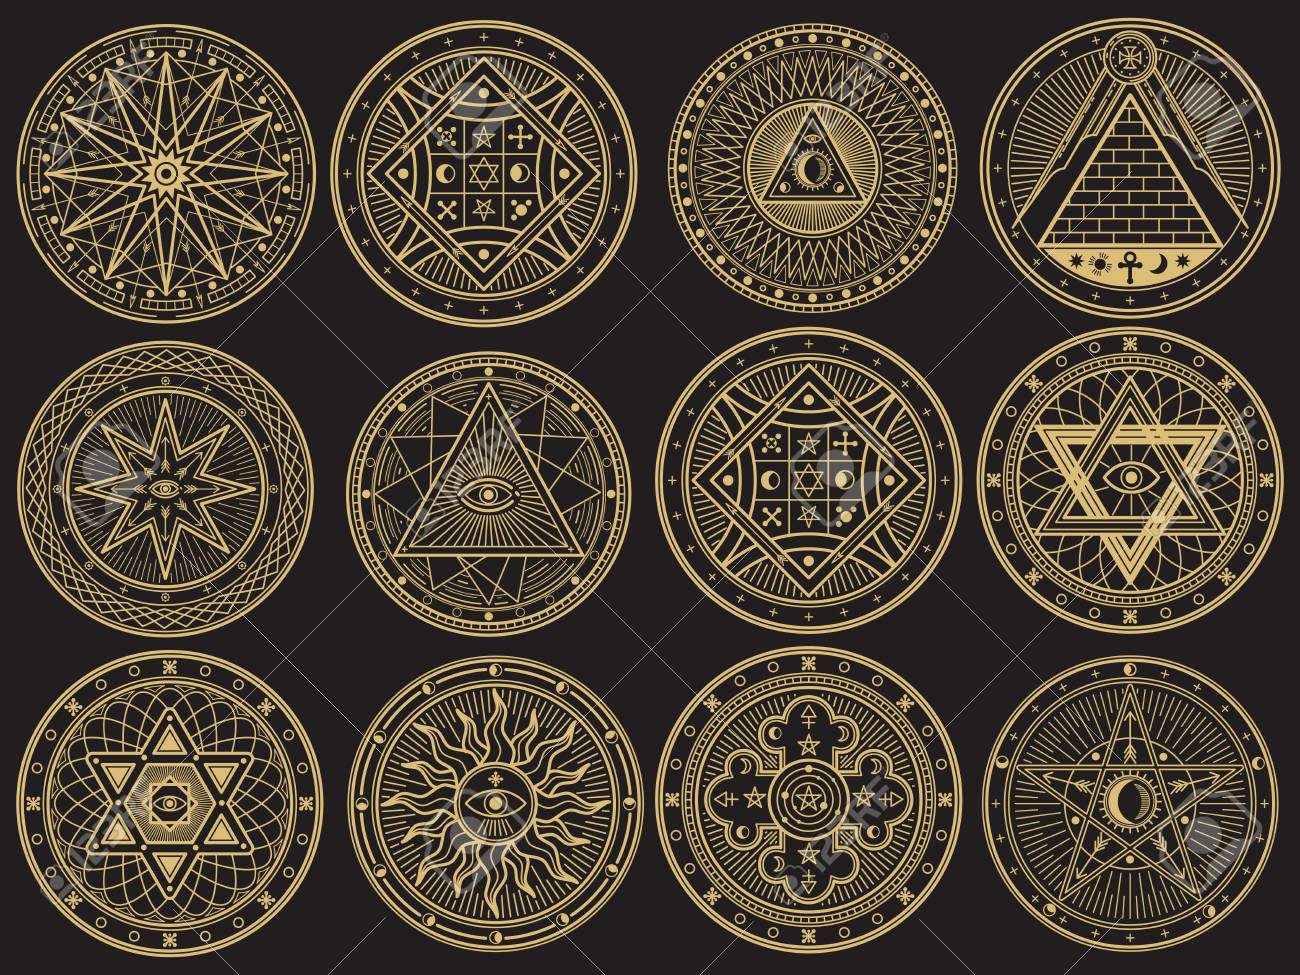 Golden mystery, witchcraft, occult, alchemy, mystical esoteric symbols - 94907048